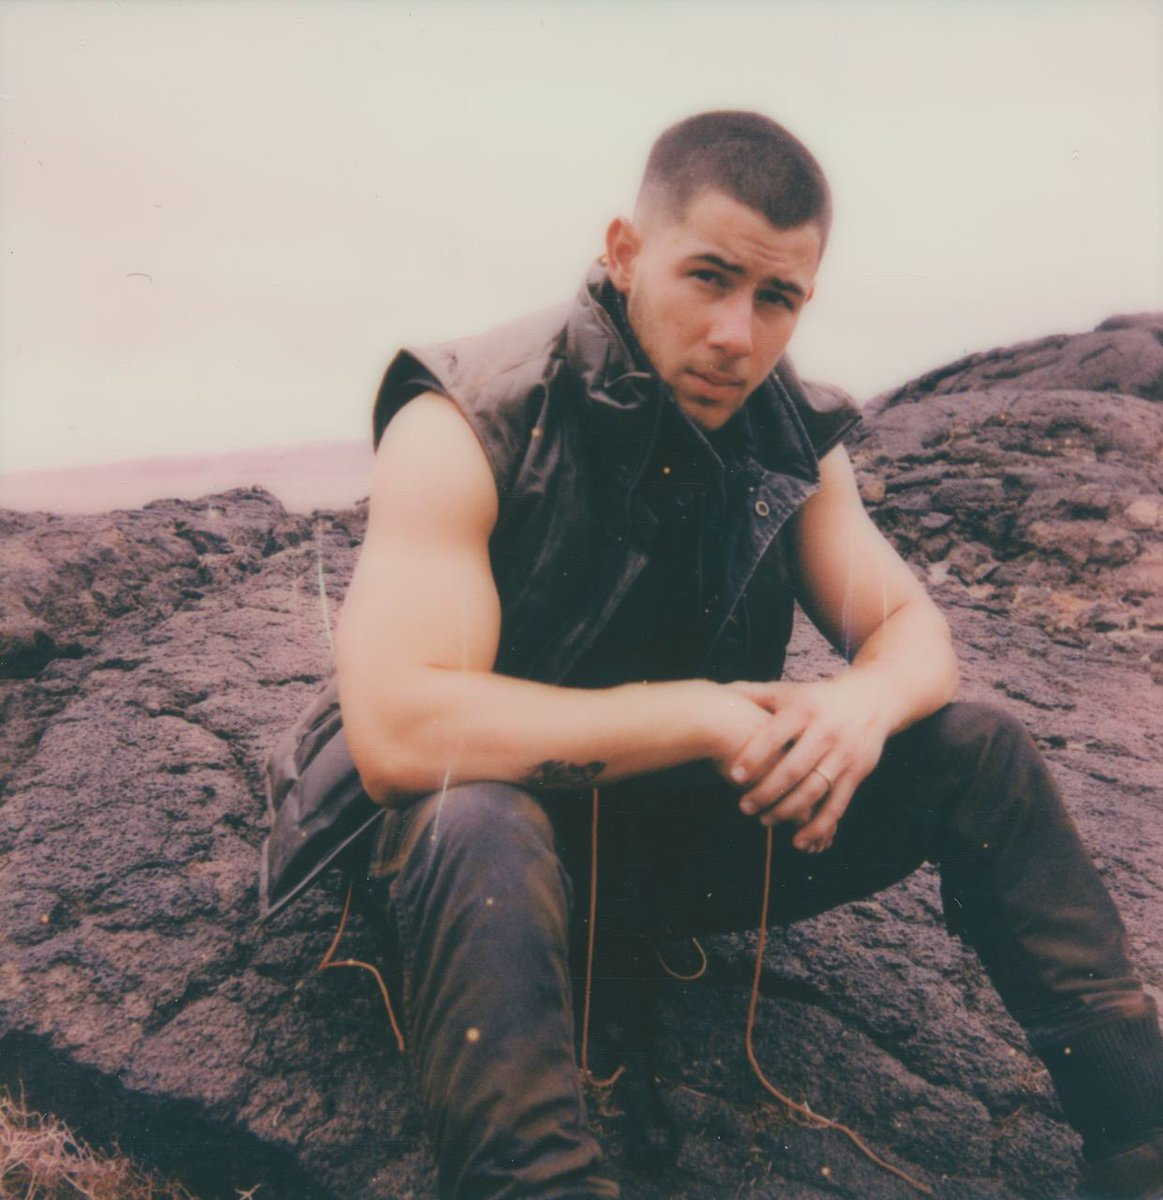 Replying to @nickjonas: And I'm talking to you, but it never feels like it comes through... #Spaceman